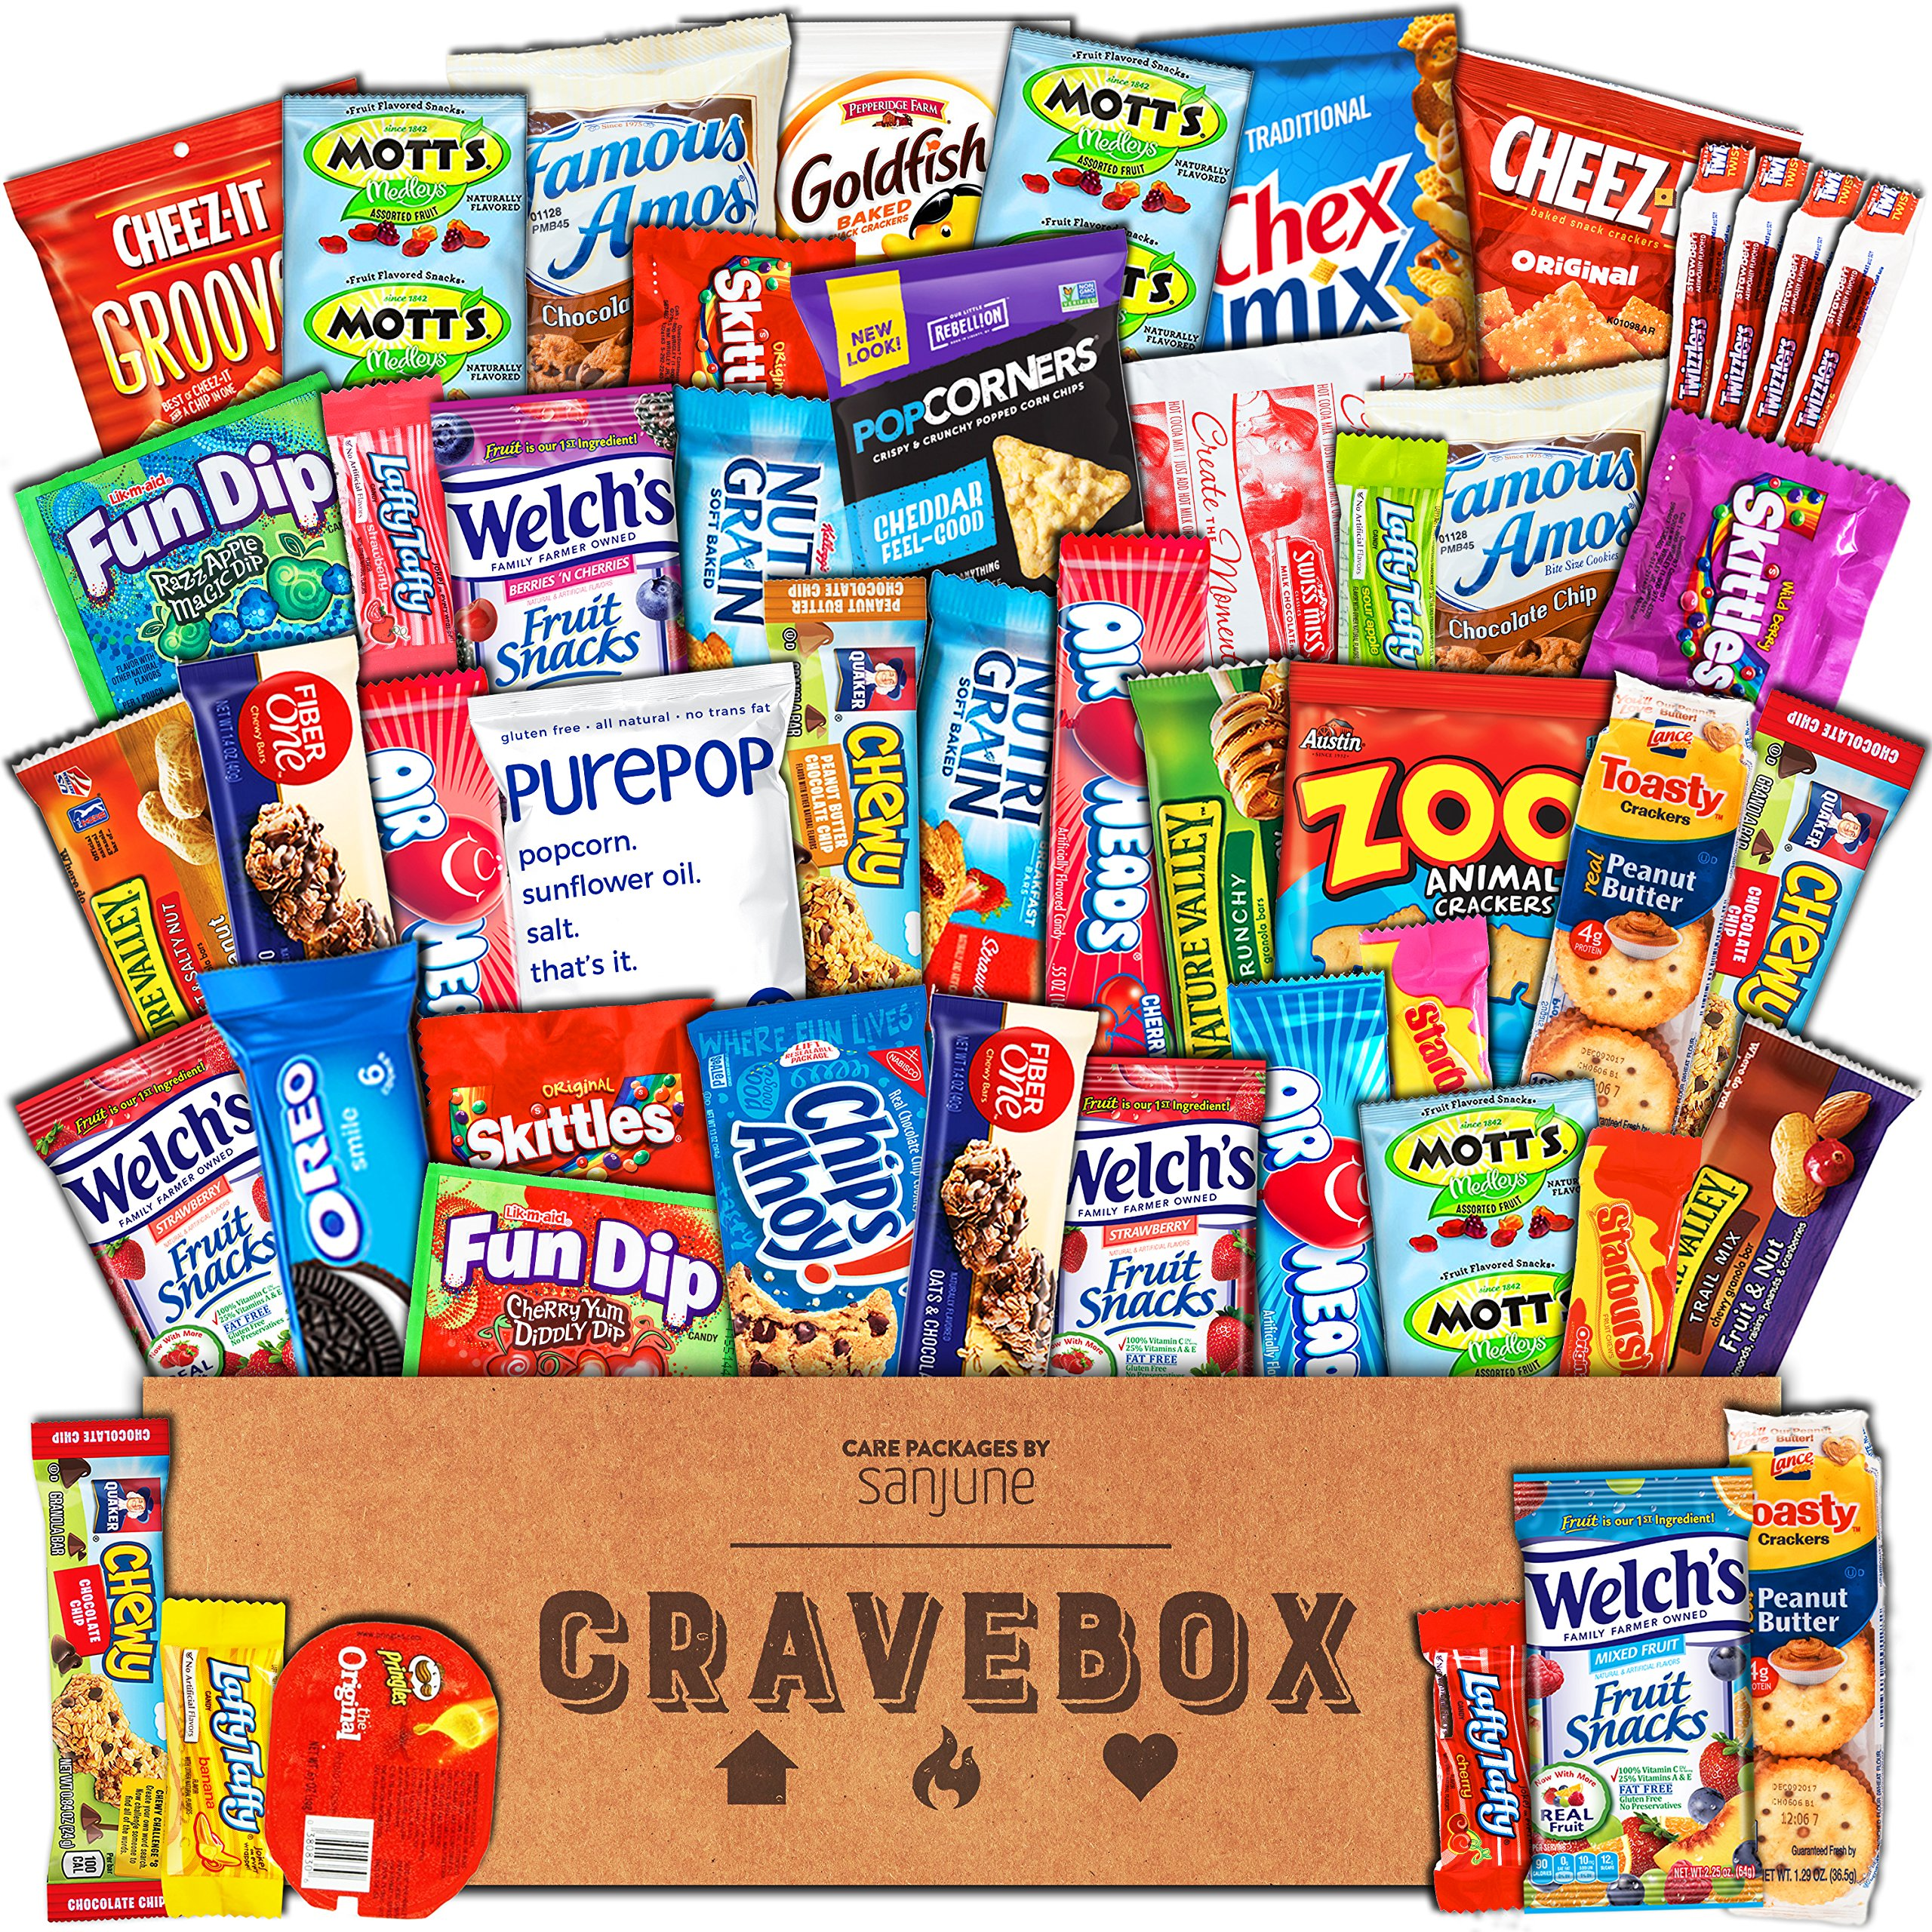 Healthy snacks care package gift basket 32 health food snacking cravebox deluxe care package snack box gift basket variety pack with bars chips negle Choice Image